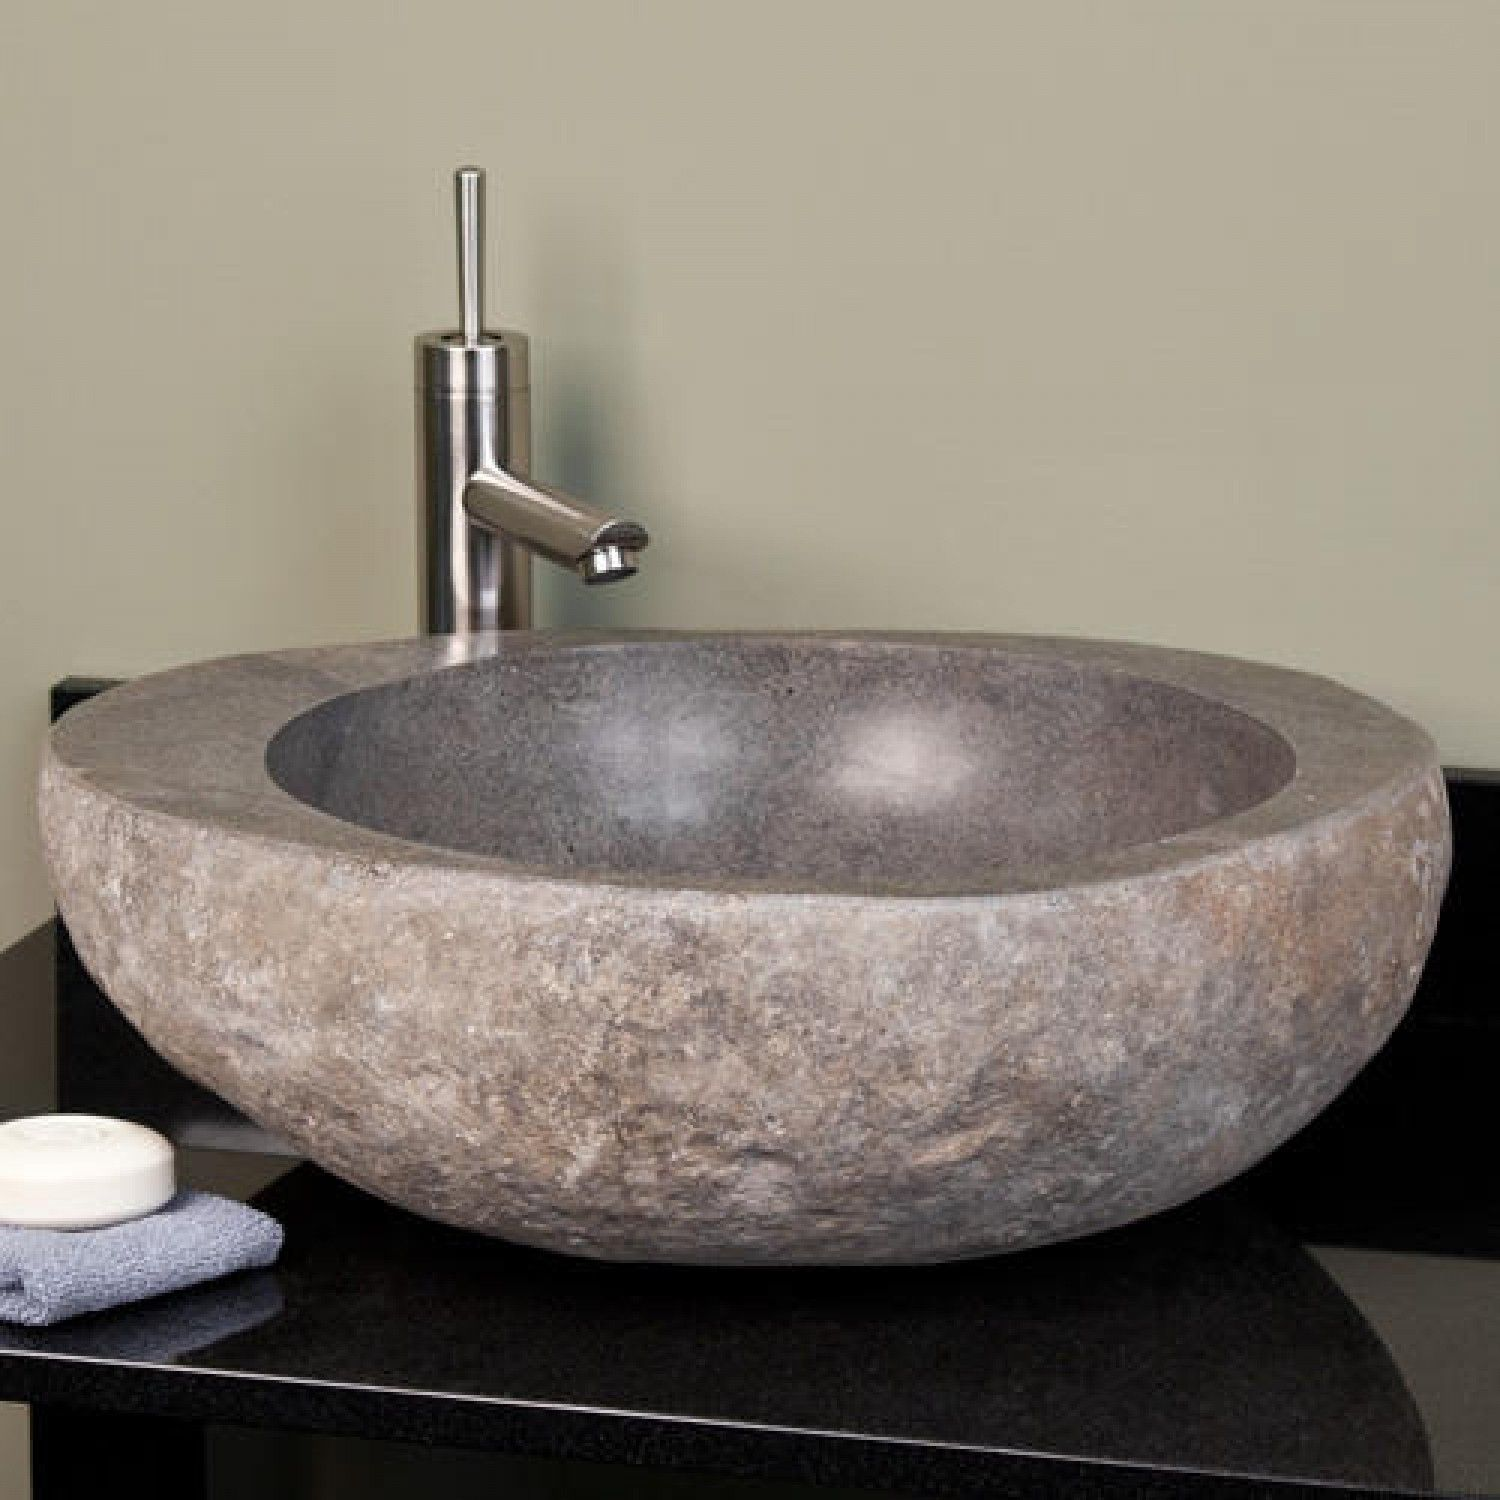 Double Vessel Sinks On Vanity Natural Light Gray River Stone